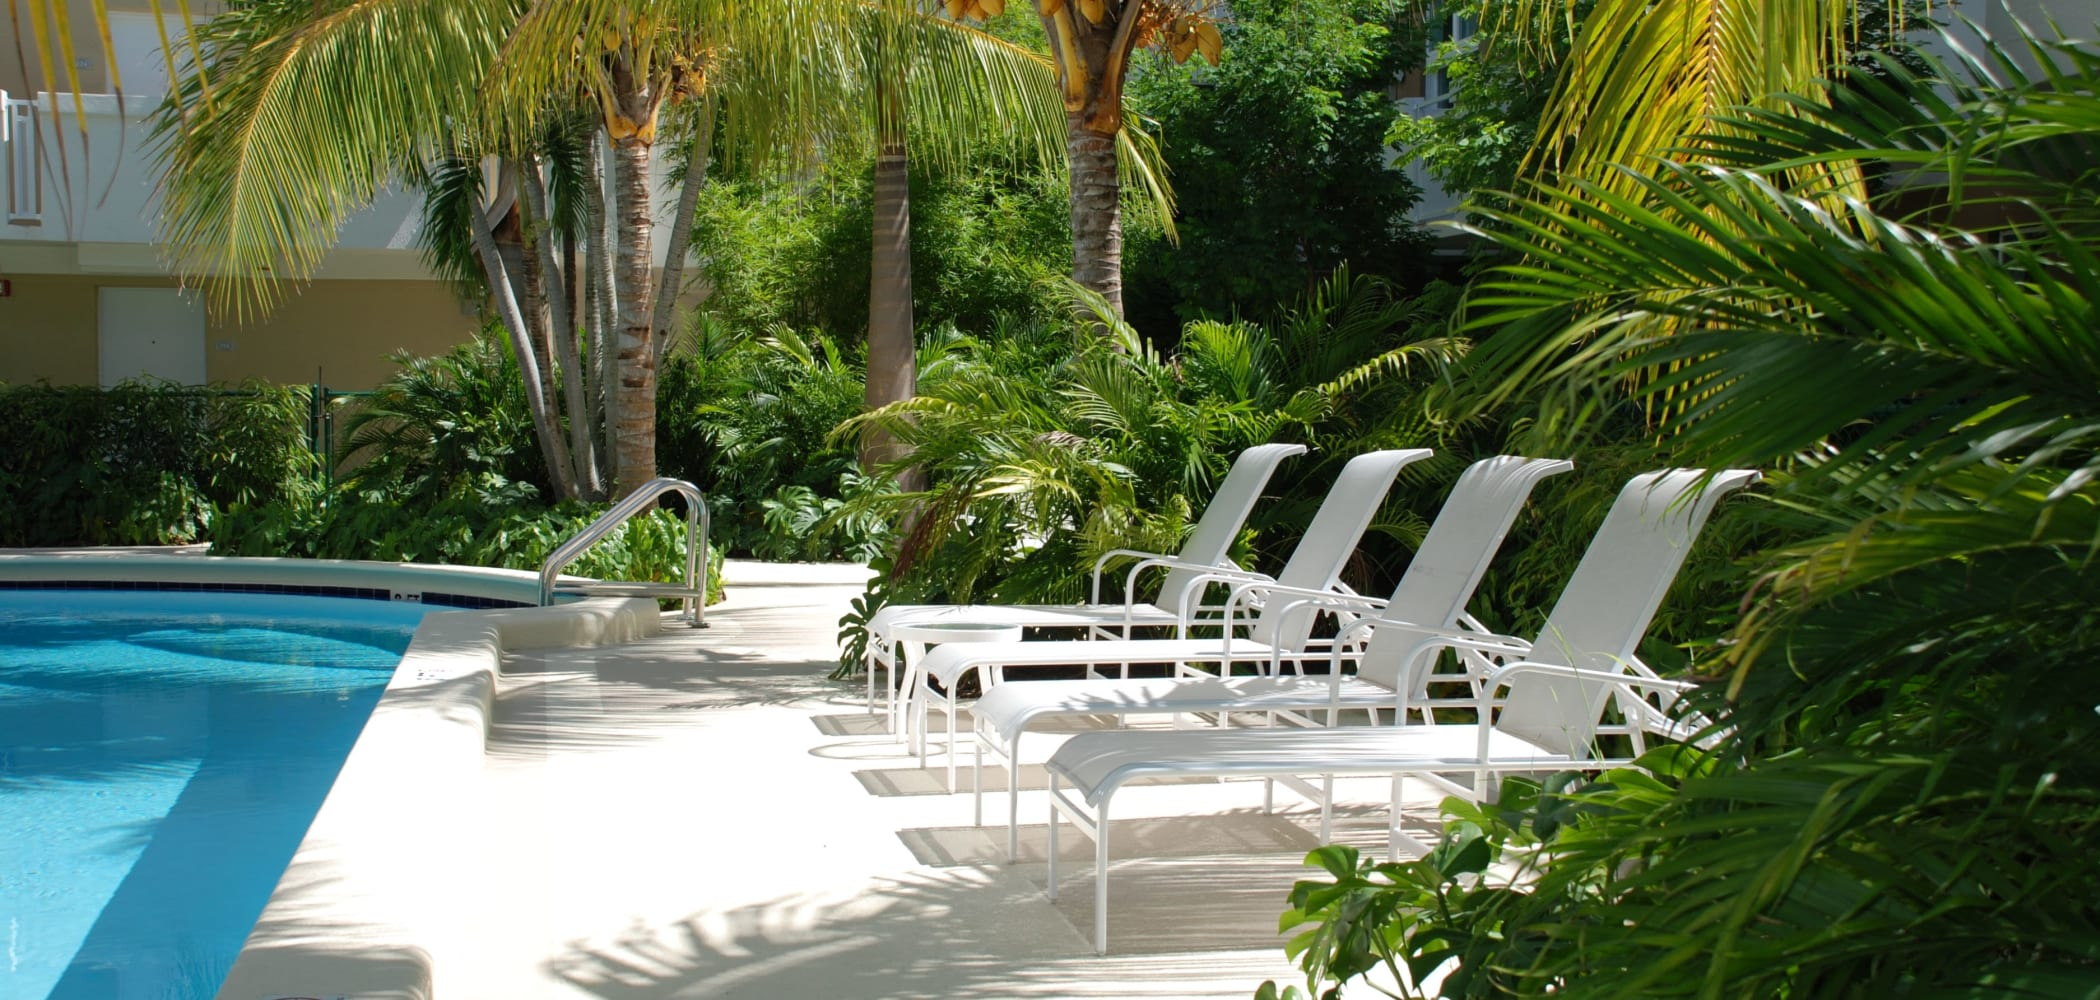 Poolside lounge at The Cloisters in Miami, Florida